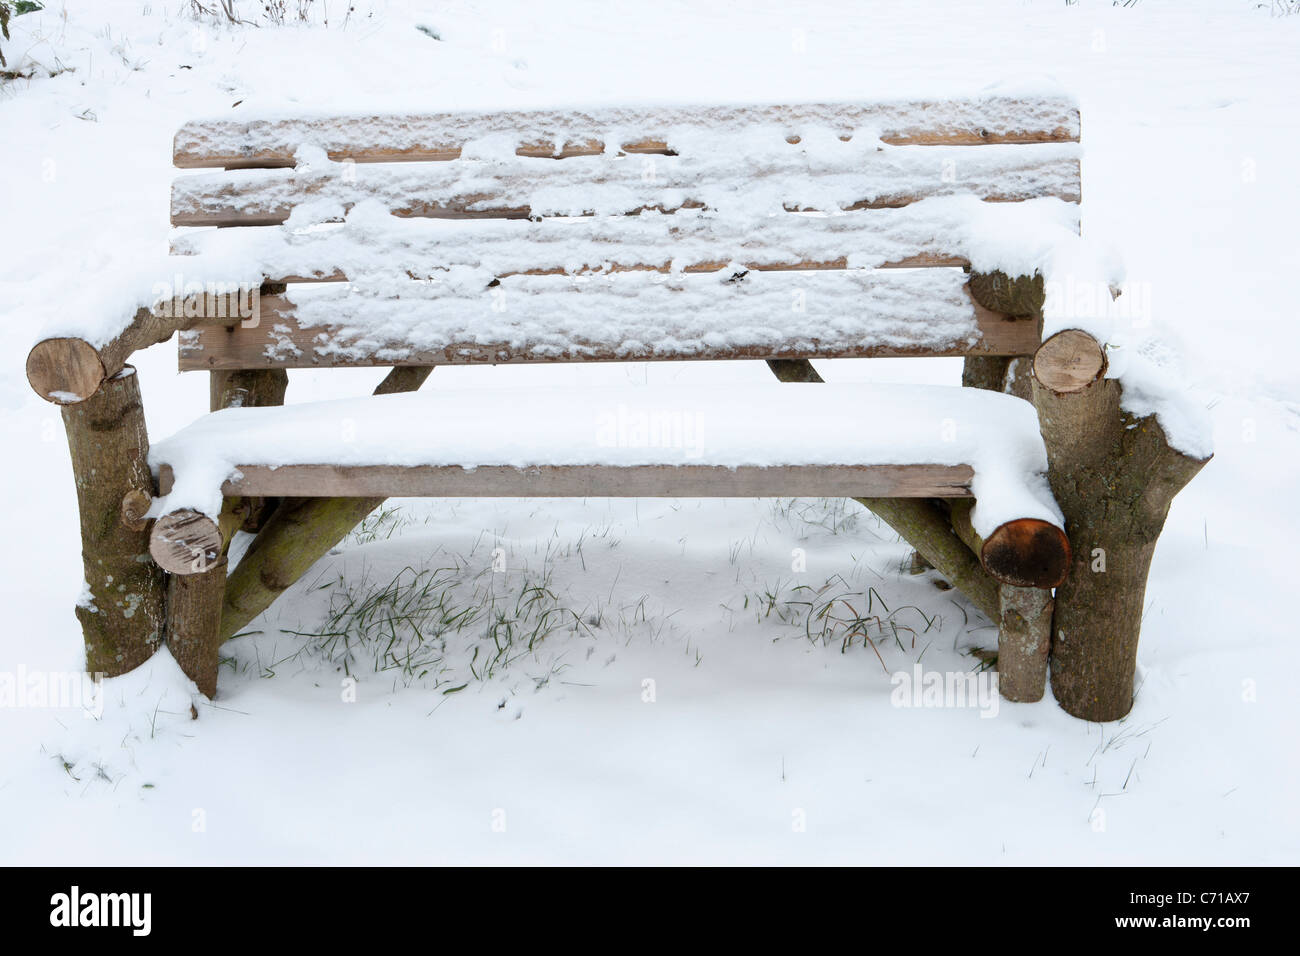 Rustic Garden Bench Made From Old Logs Covered In Snow Winter